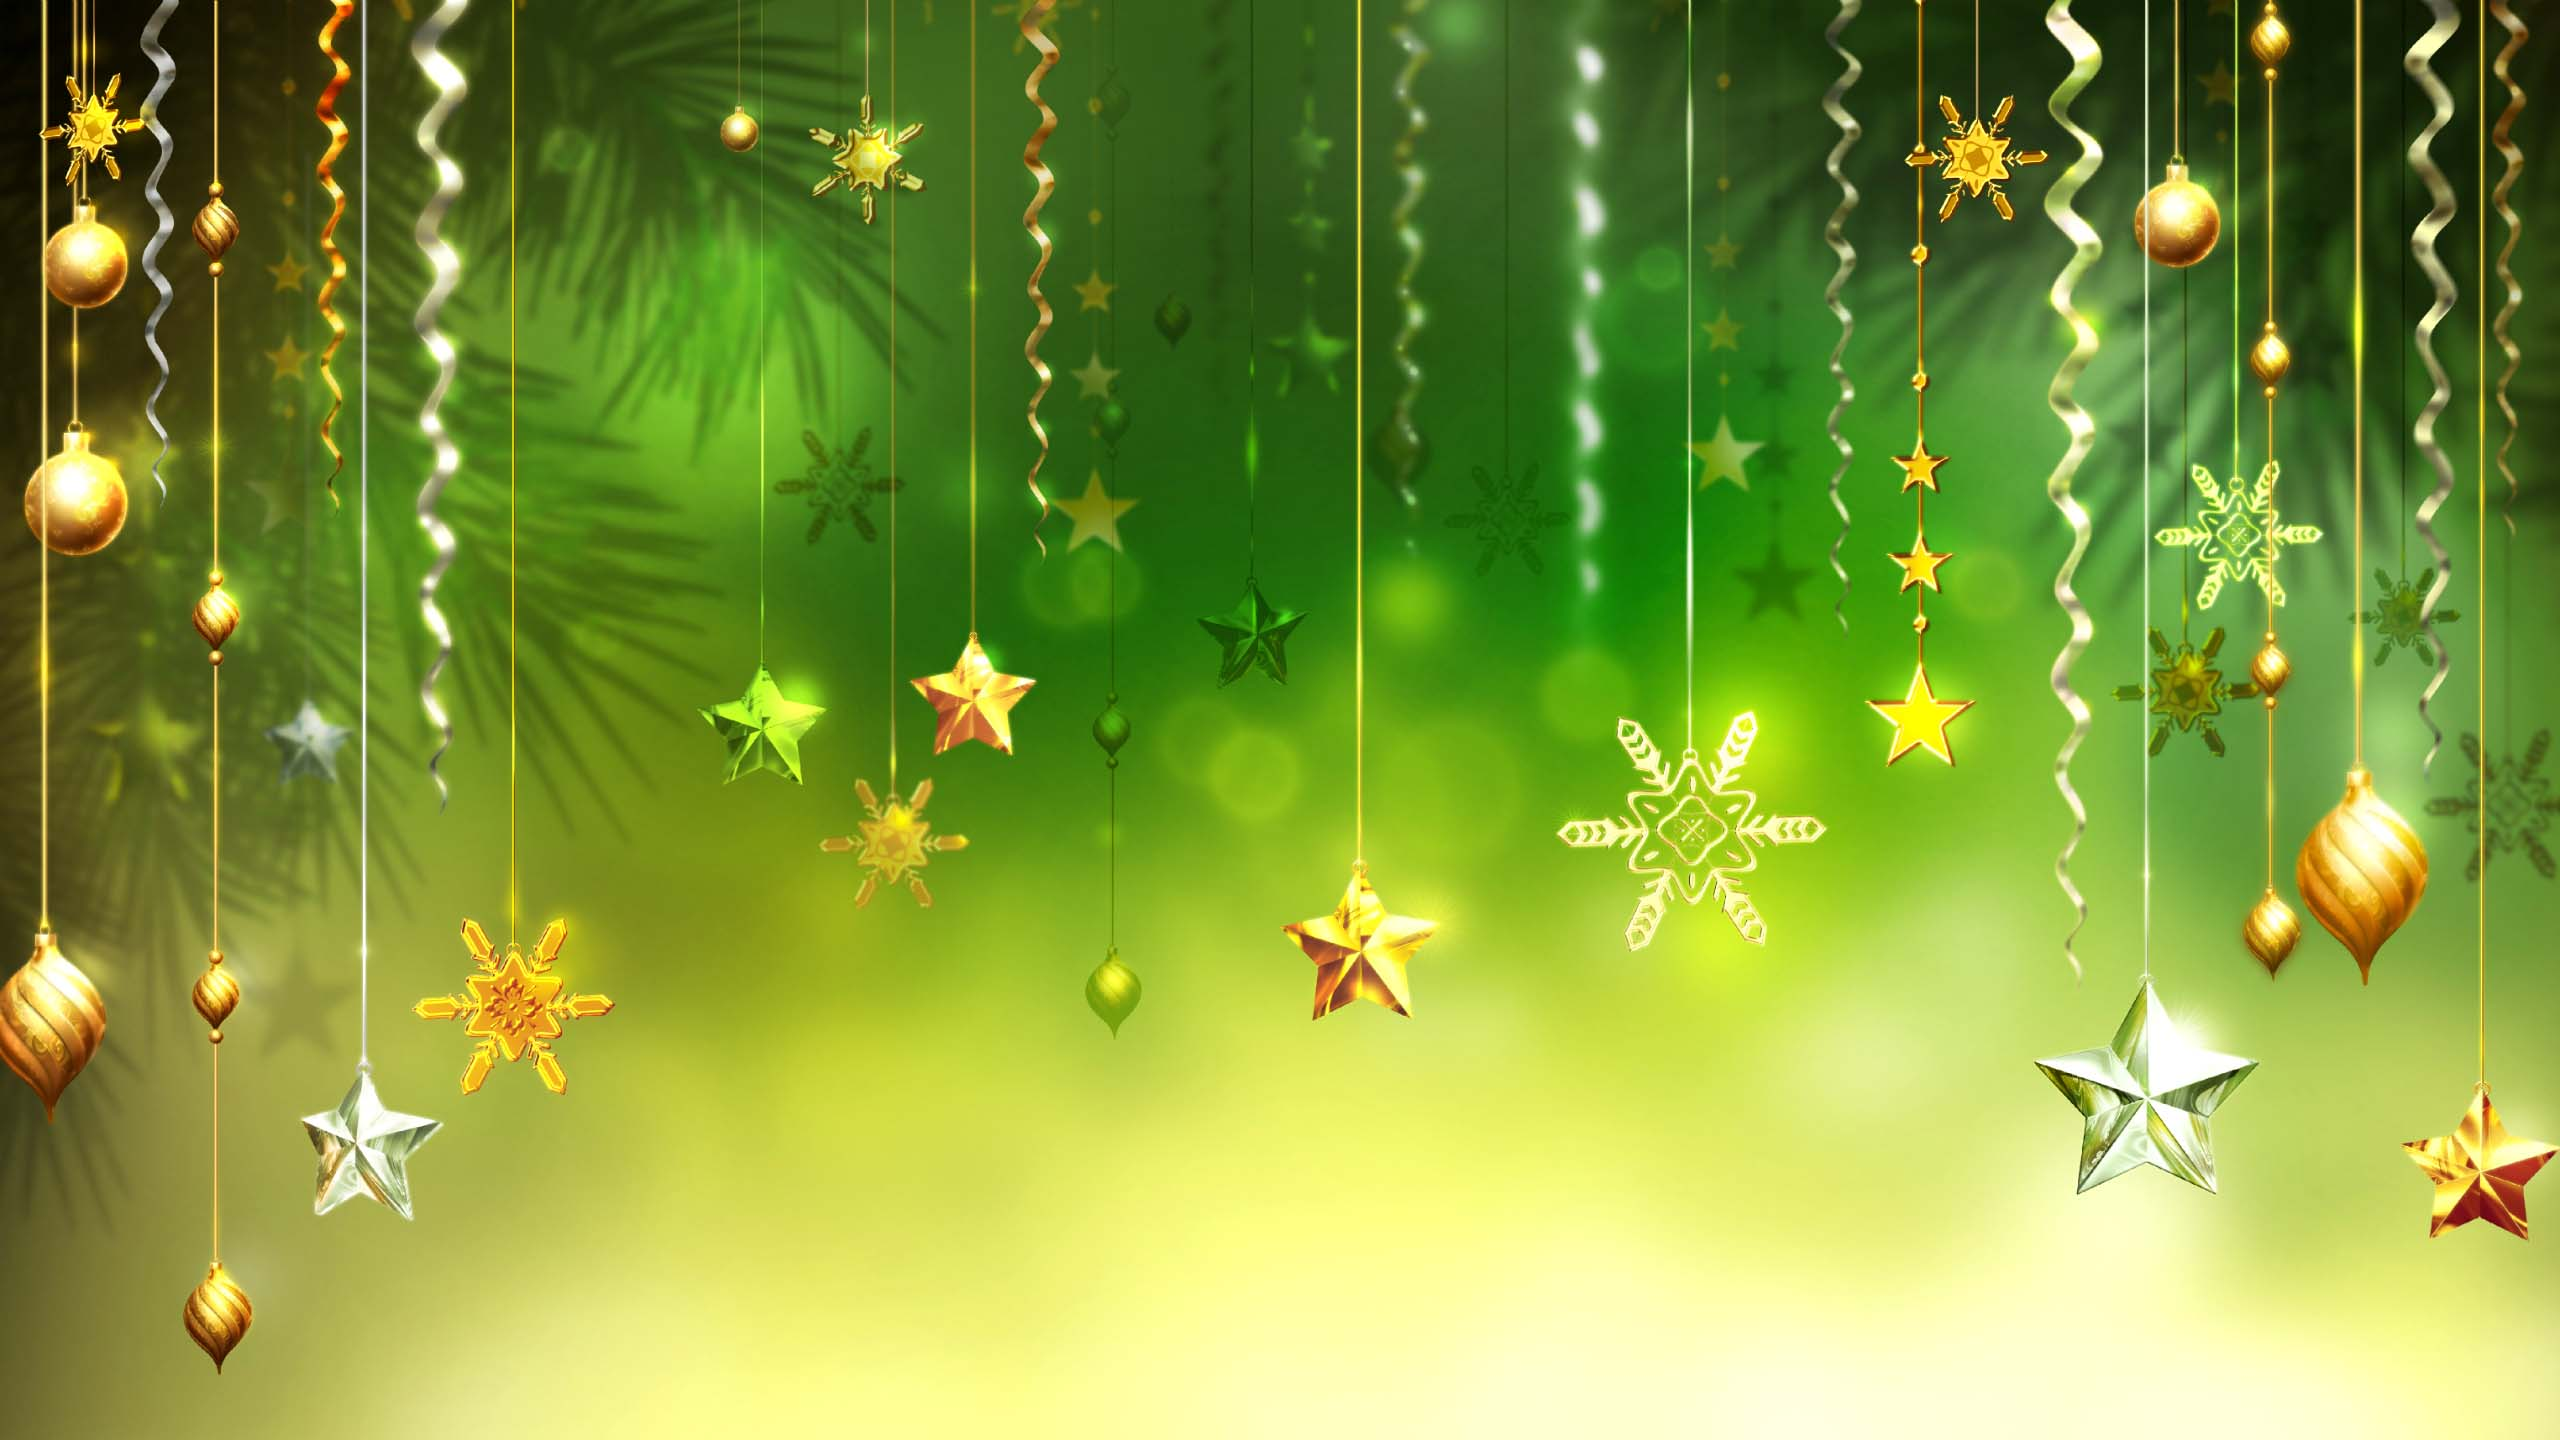 Background christmas wallpaper